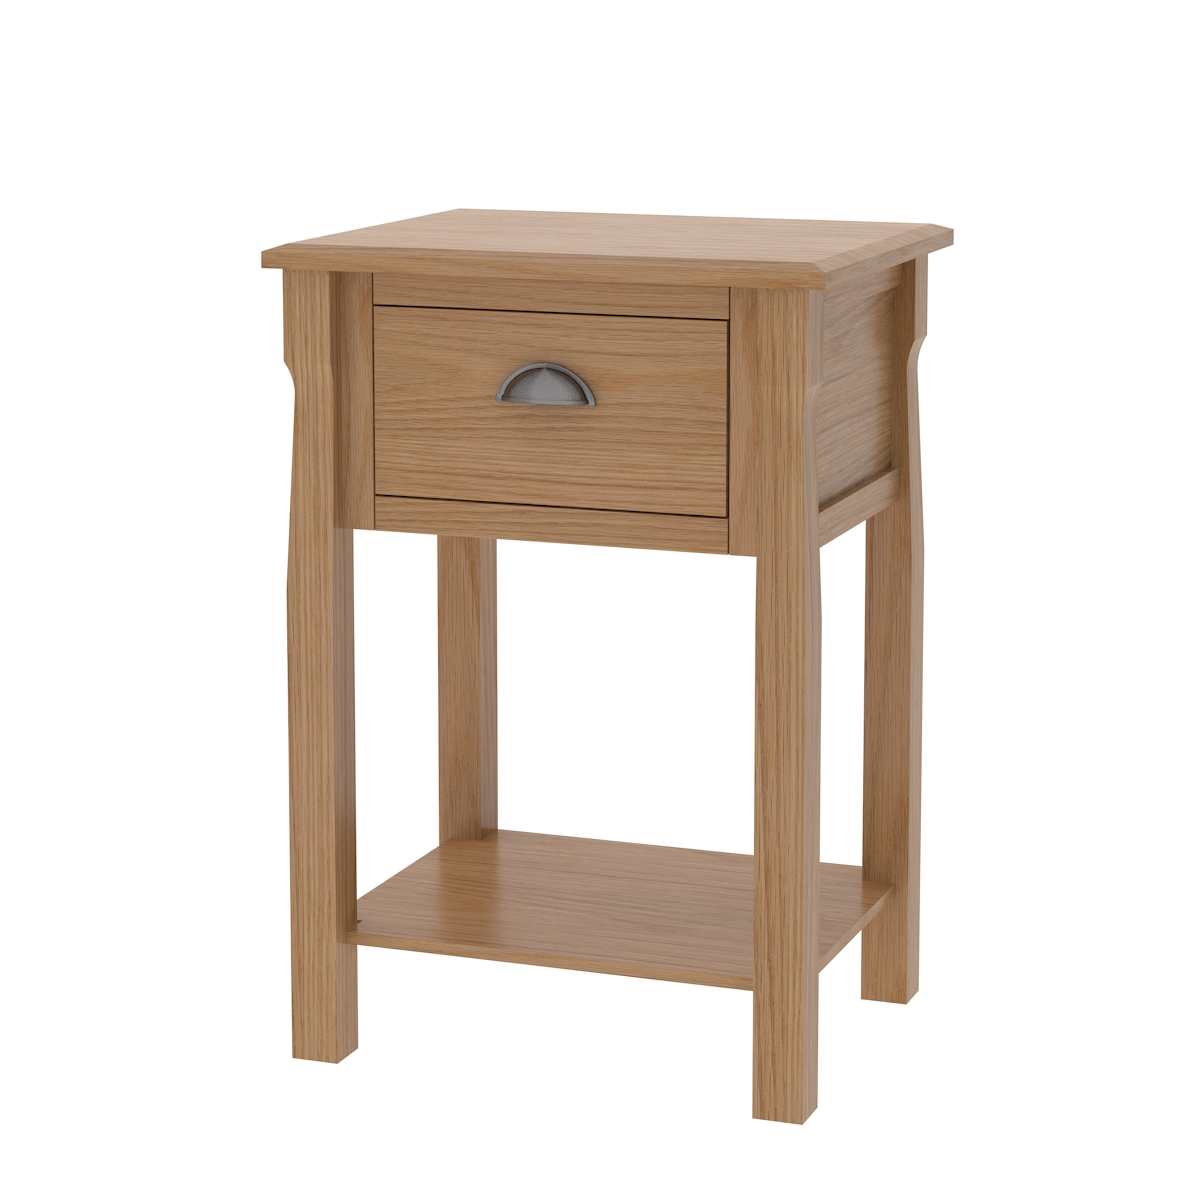 Dresser Horizontal Farmhouse likewise 14672 likewise Pdf Plans How To Build Adirondack Bar Chairs Download Lowes Projects as well Nightstand Drawer Catalina also Centerville Amish Classic Treated Porch Swing. on amish built rocking chairs